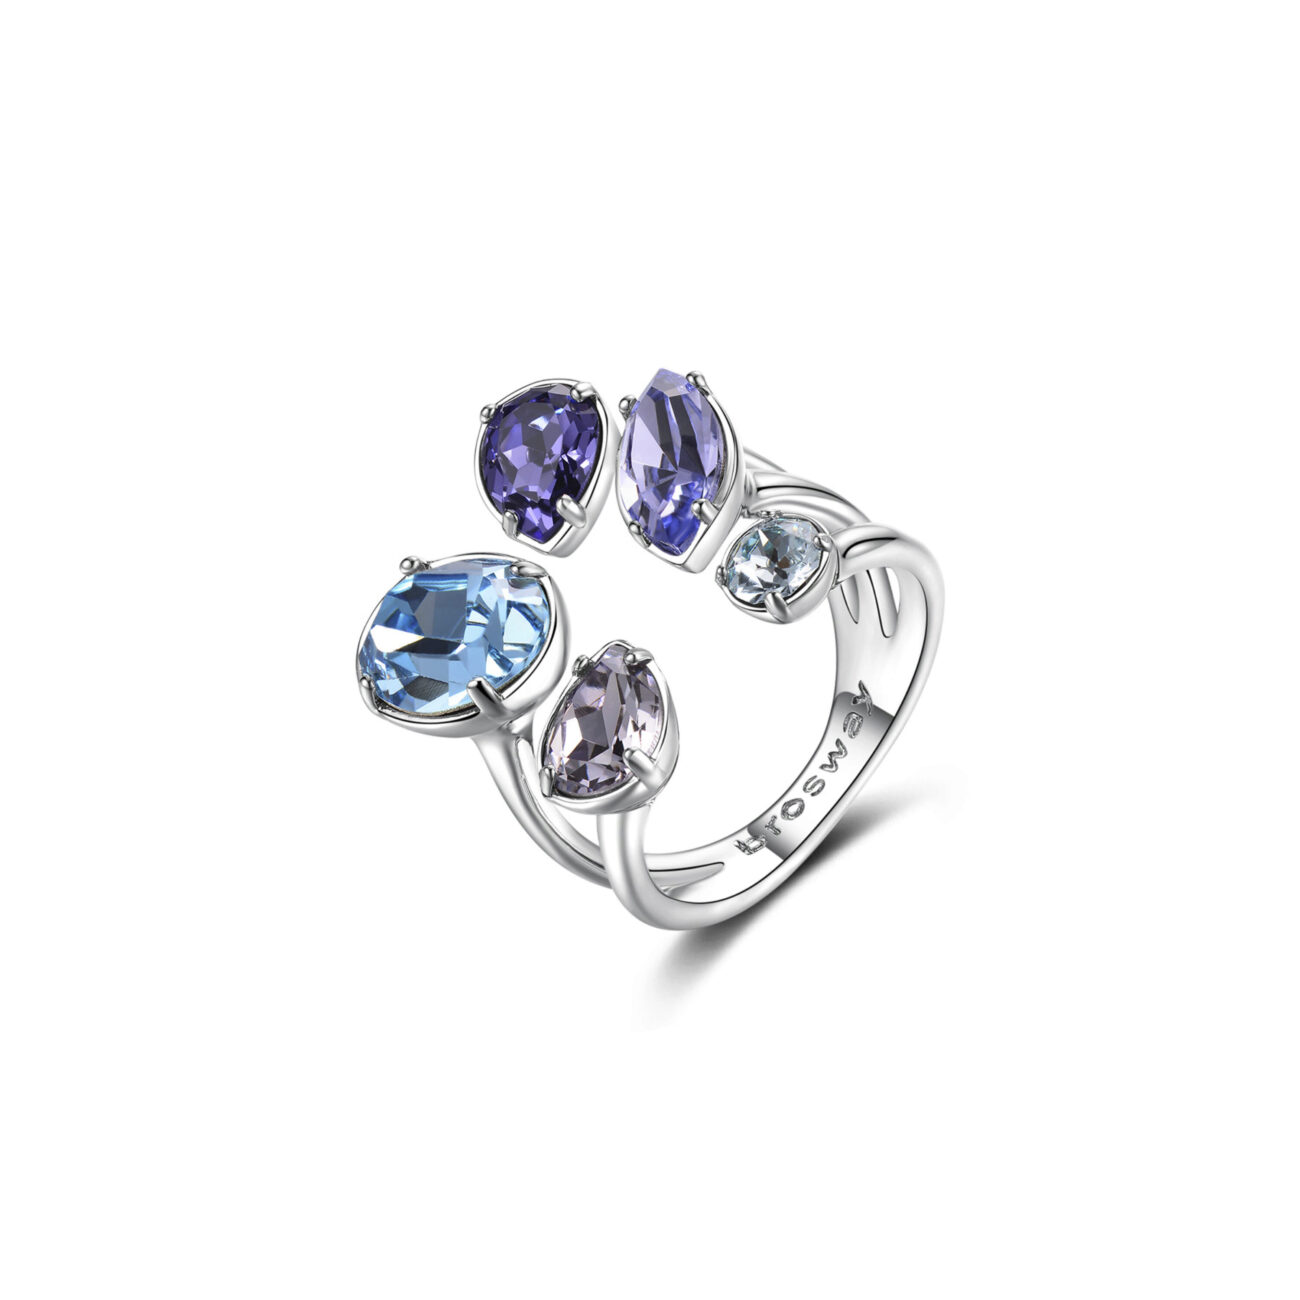 Bass rhodium ring, with colored Swarovski® Elements crystals.